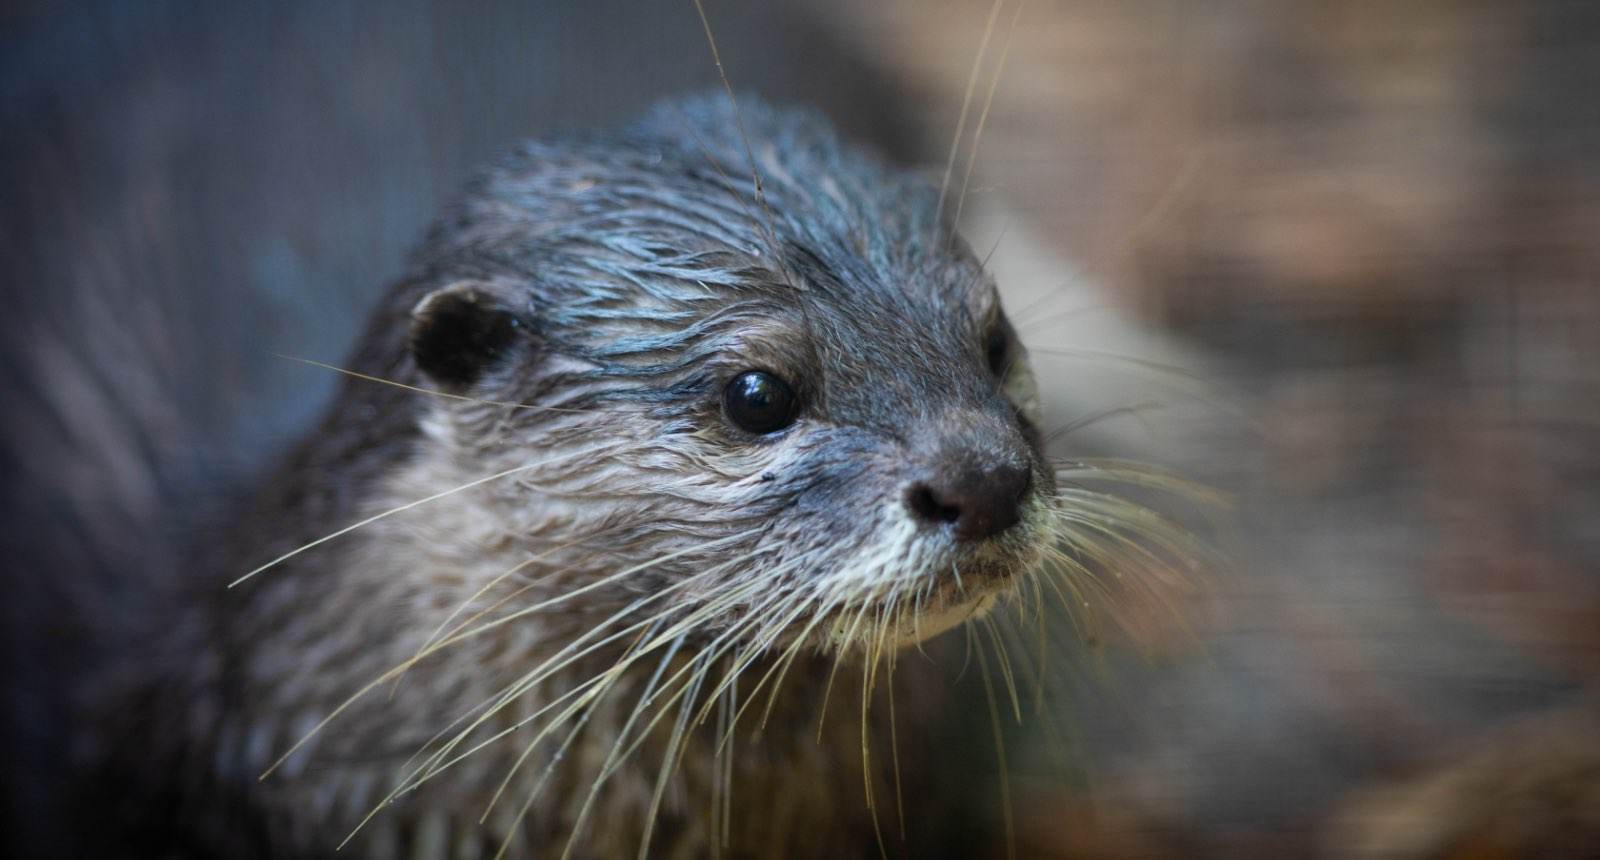 Asian small-clawed otter - Aonyx cinereus